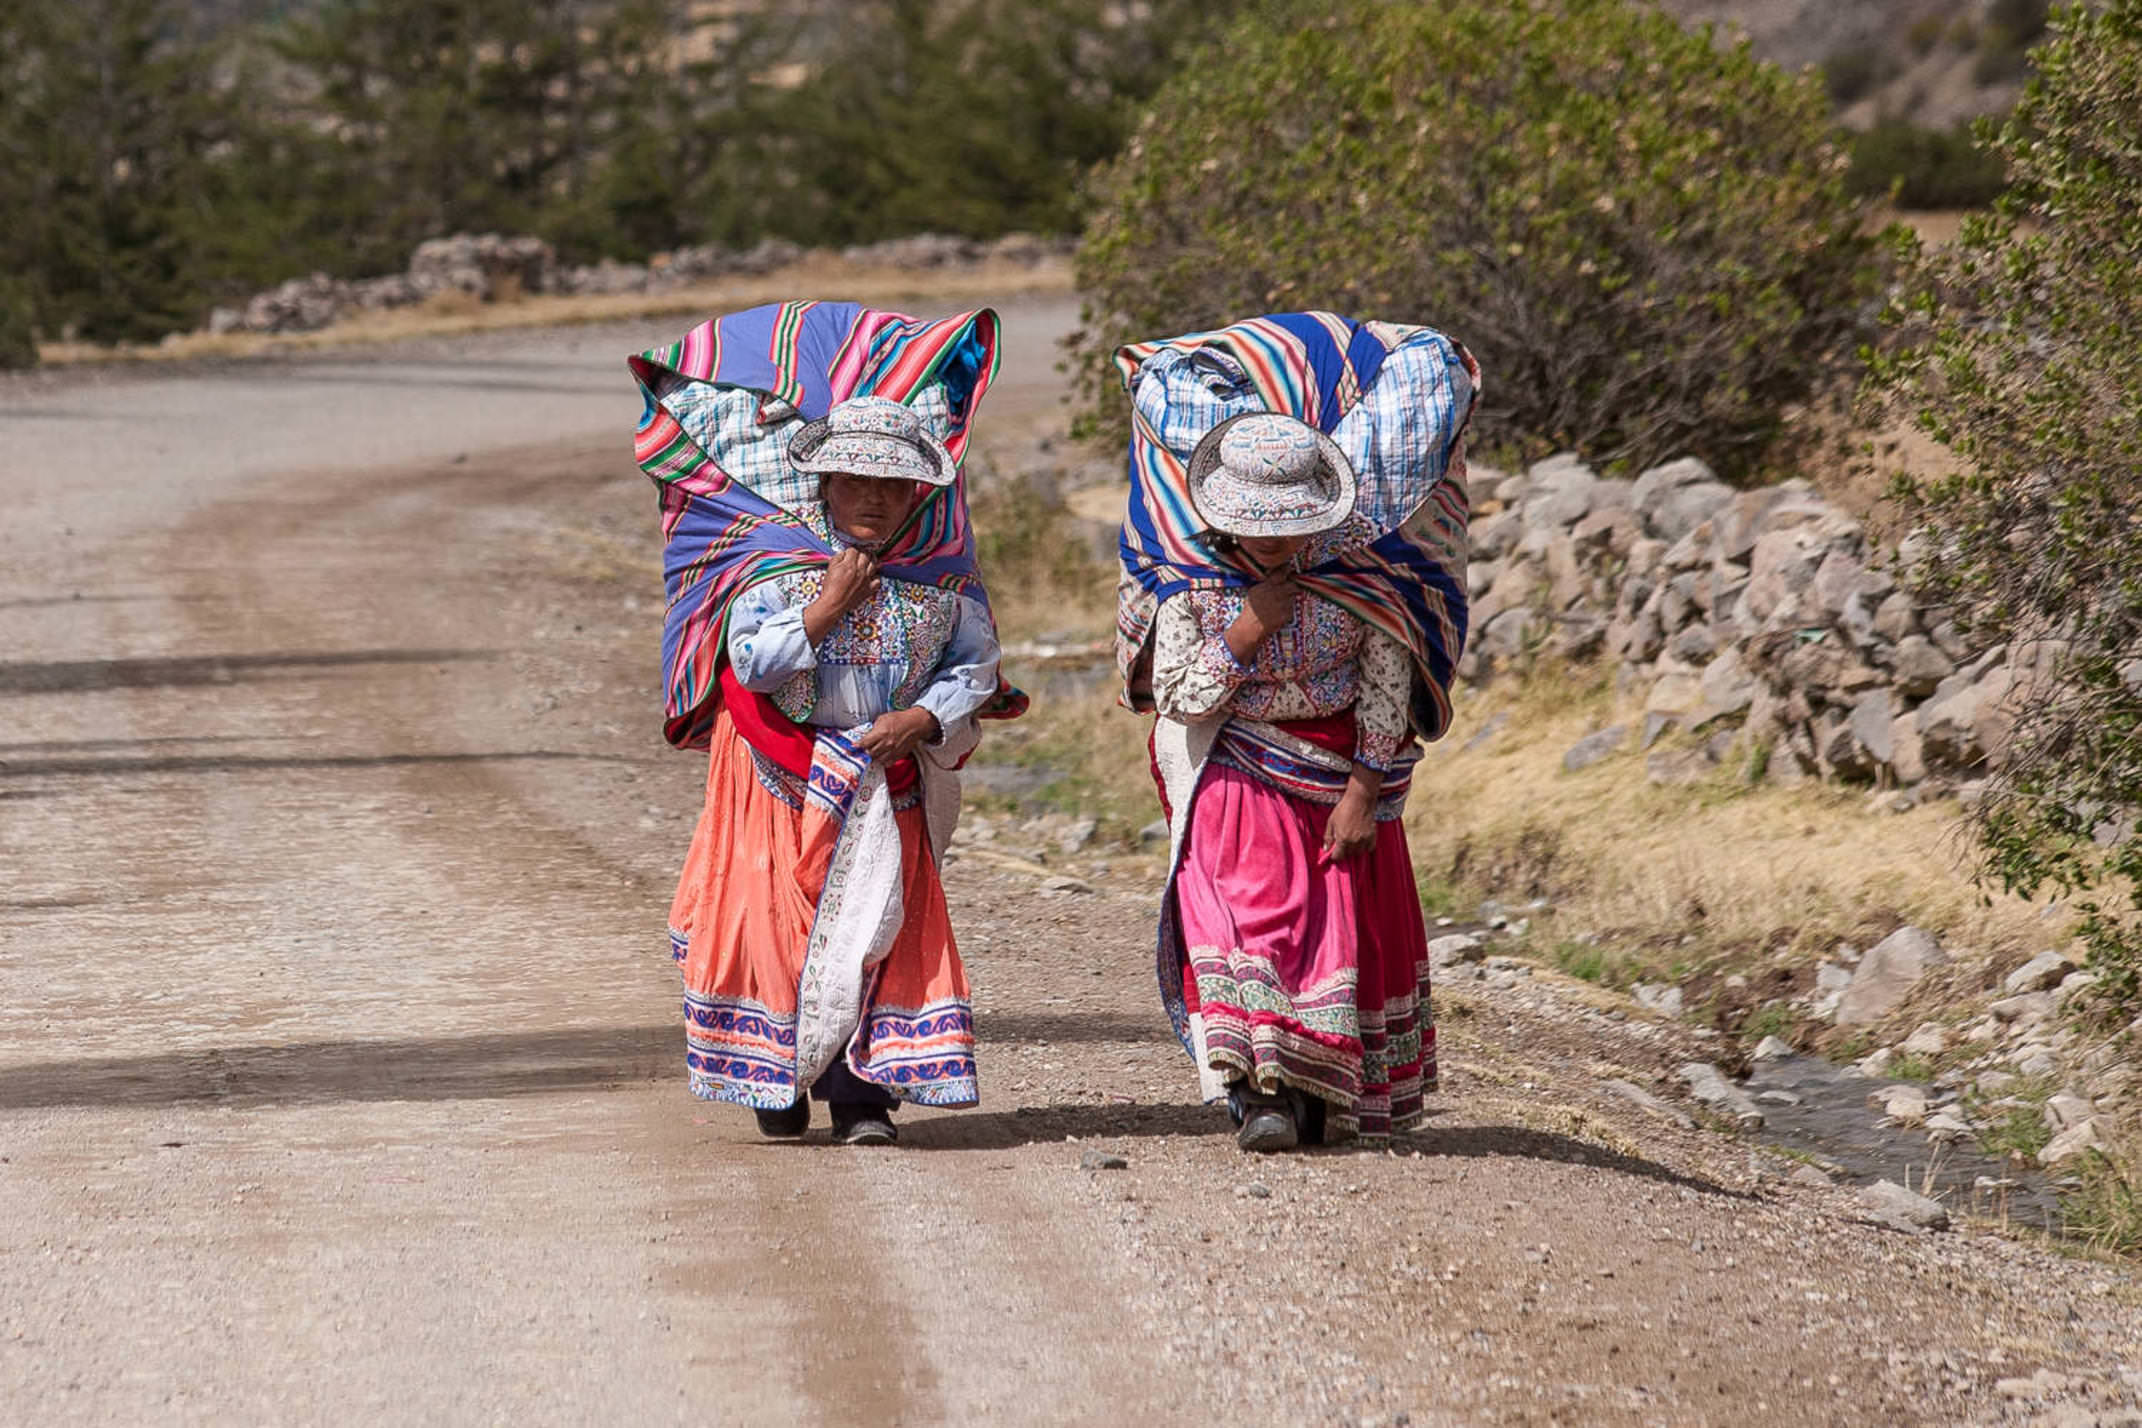 Peru colca canyon not identified women in typical clothes caring souvenirs for sale in her bag circa 2013 in chivay peru